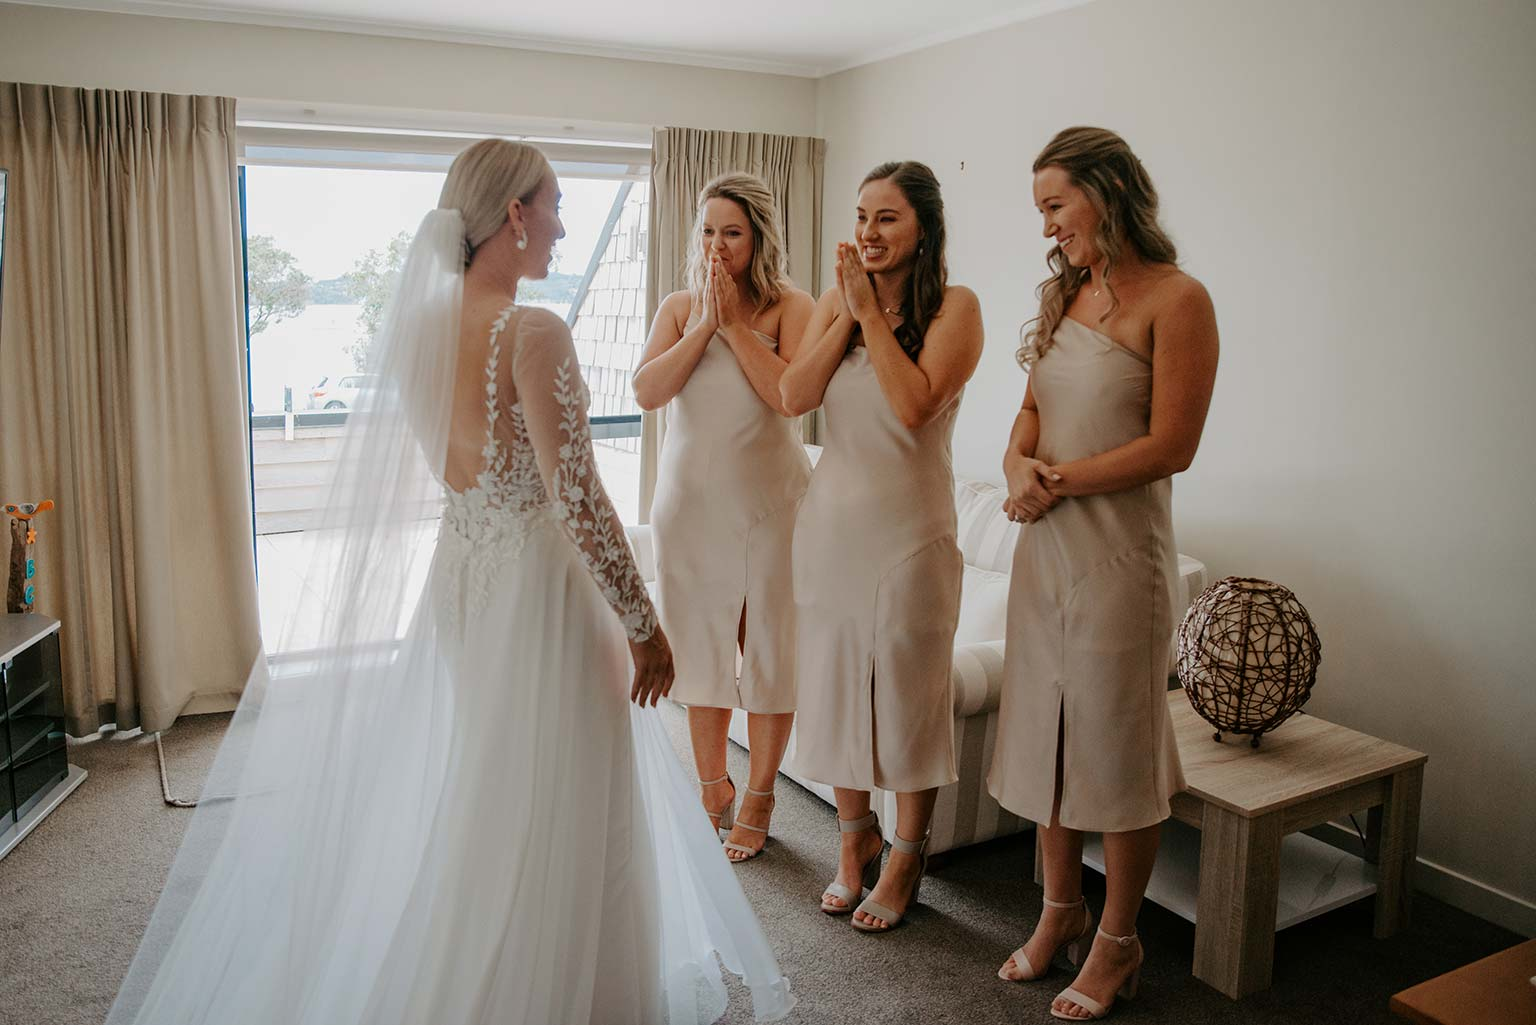 Vinka Design Features Real Weddings - bridesmaids see bride for the first time - wearing a bespoke Makaira gown with silk-chiffon and tulle overskirt giving her a beautiful train which could be removed later on to reveal a floor length party dress